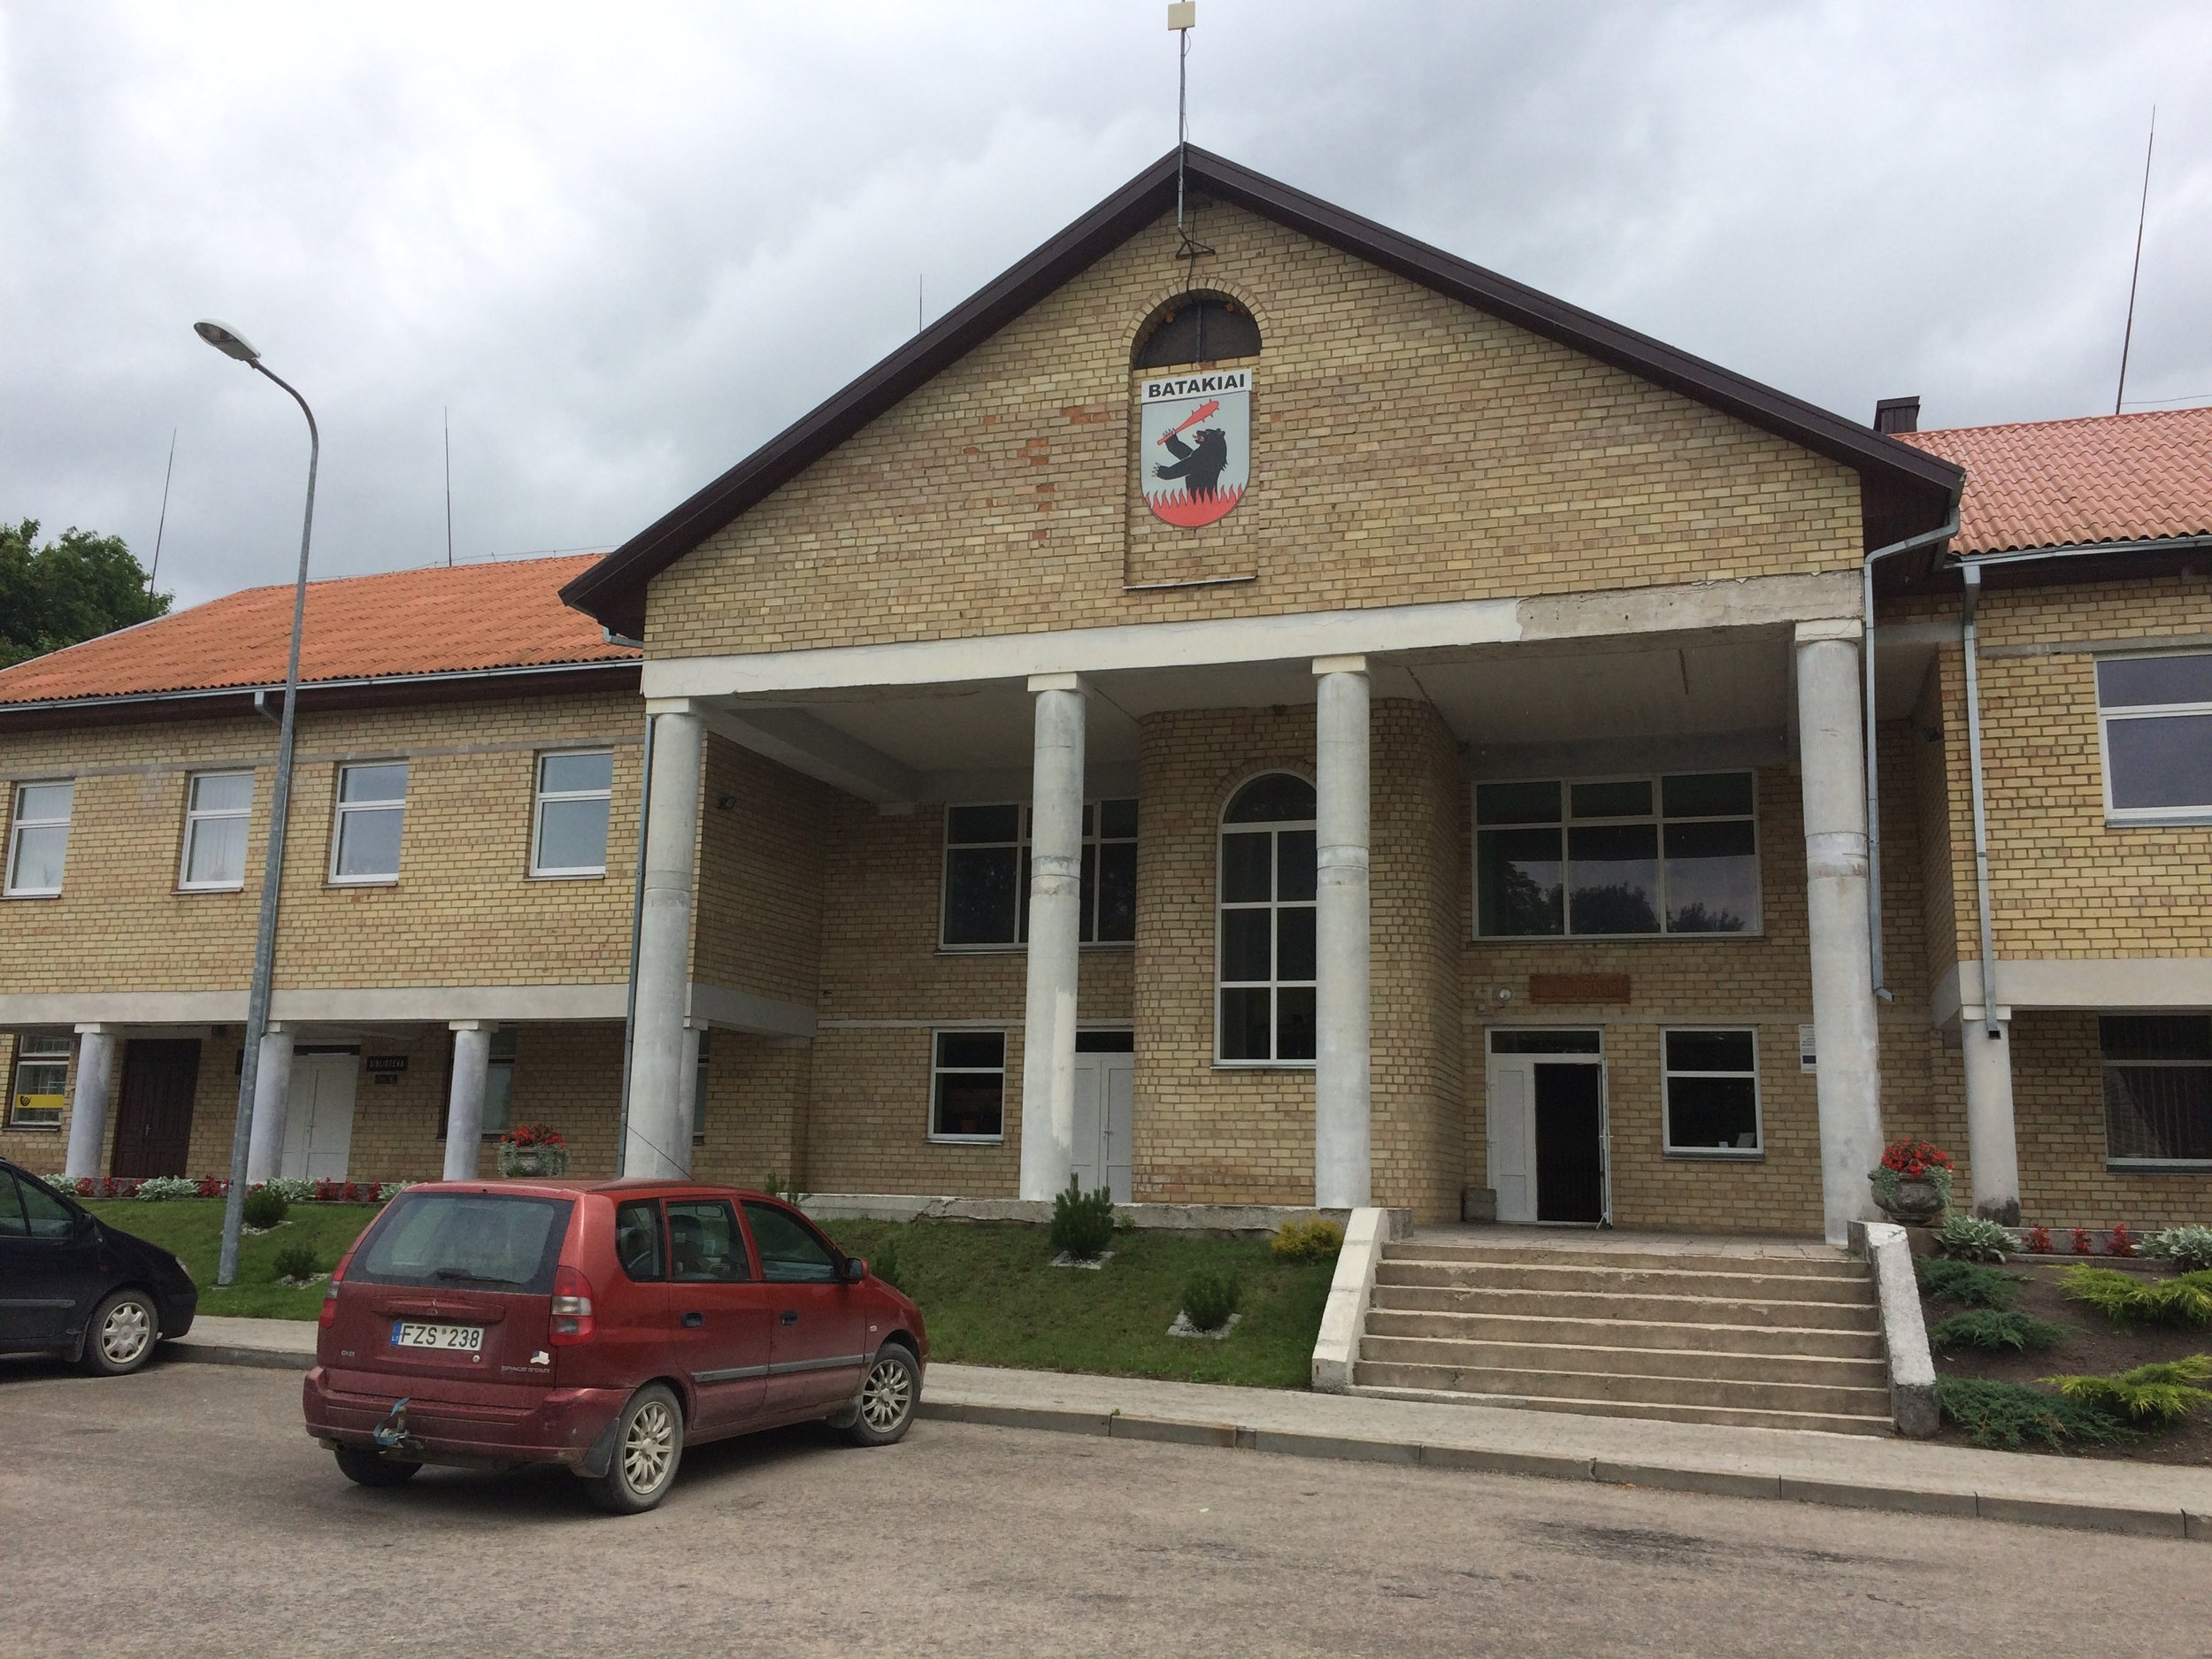 Town offices and post office